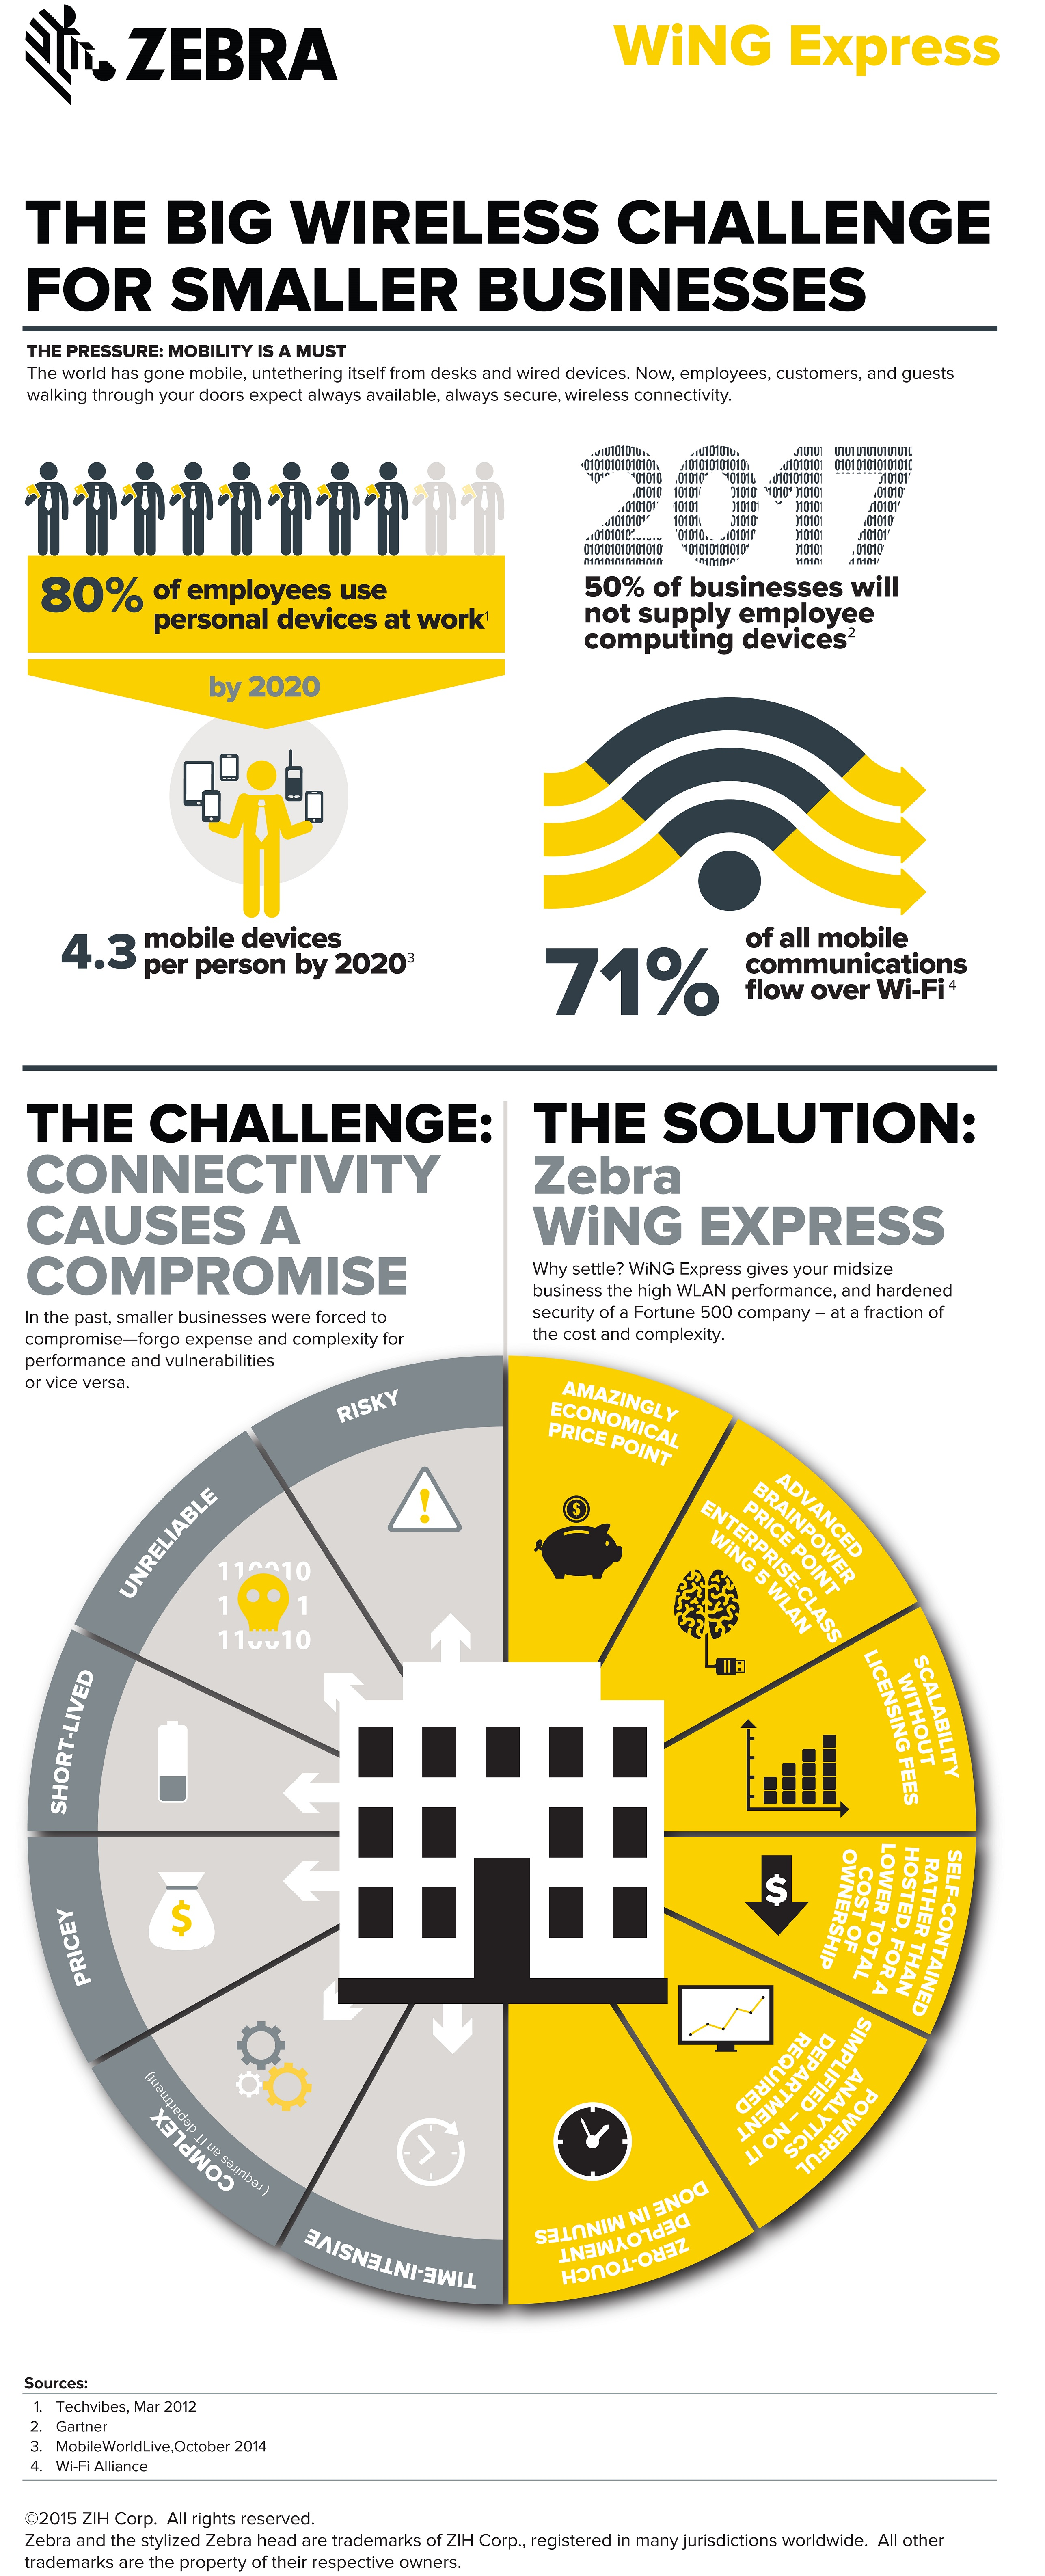 WLAN_04_Infographic-WiNGExpress_web_050515